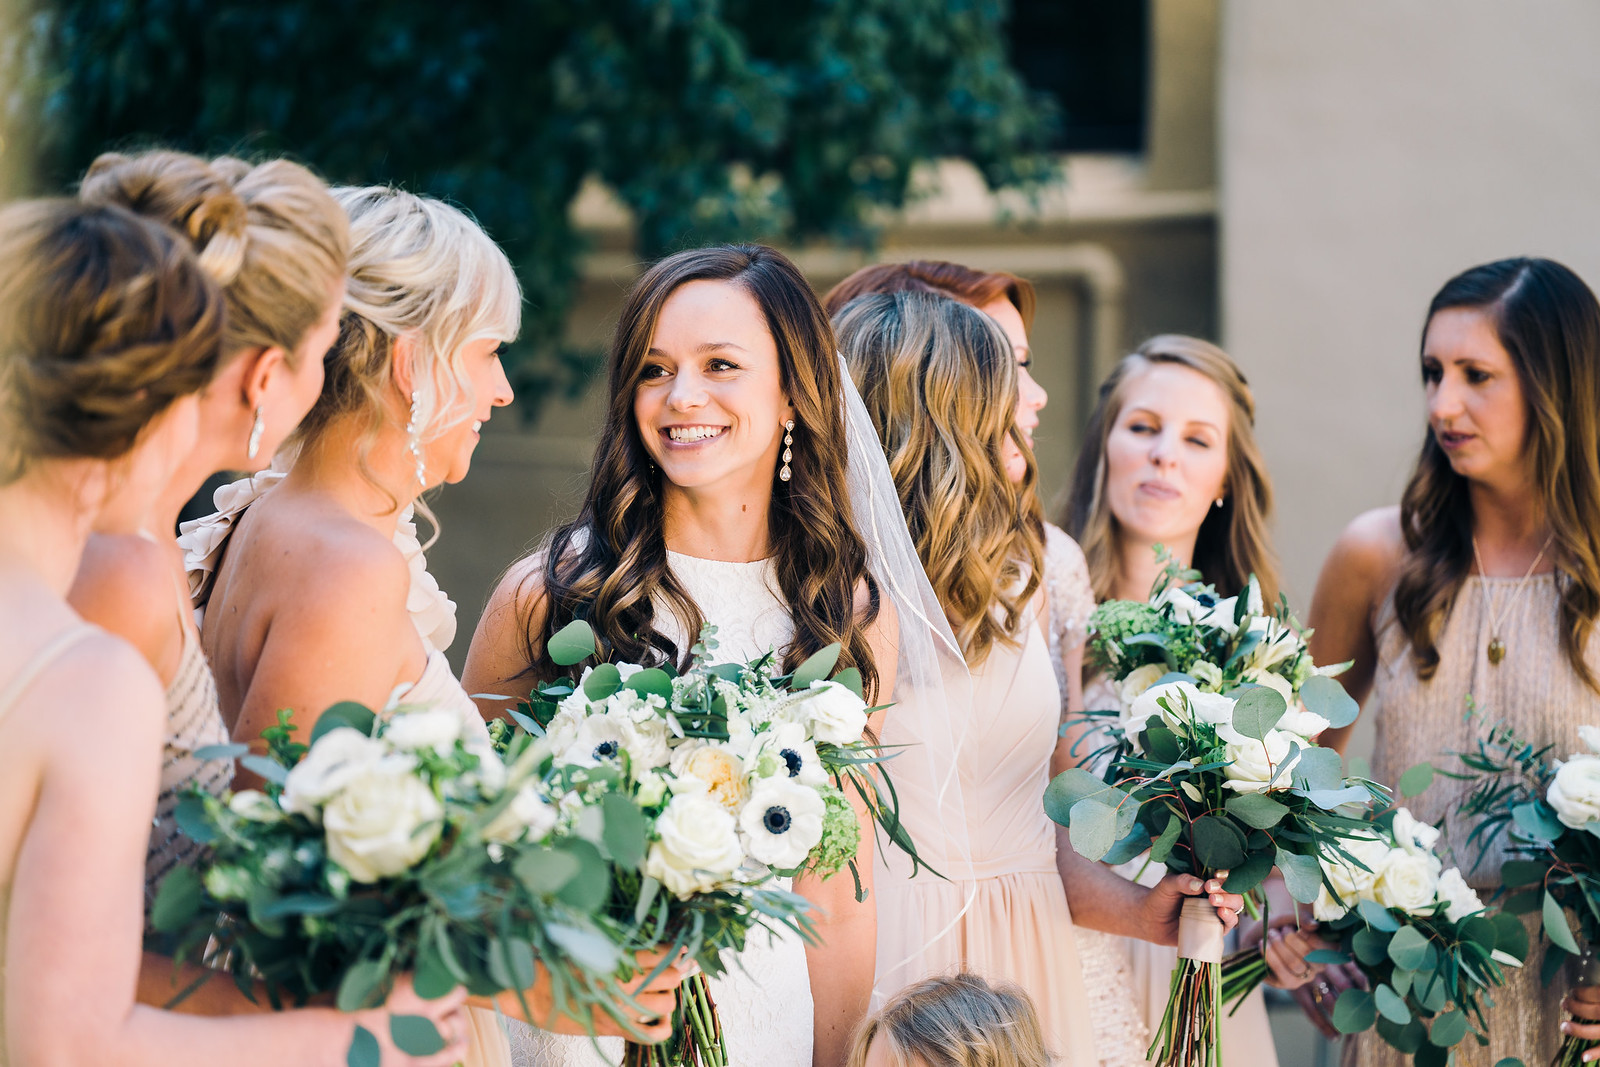 Happy bride with her bridesmaids